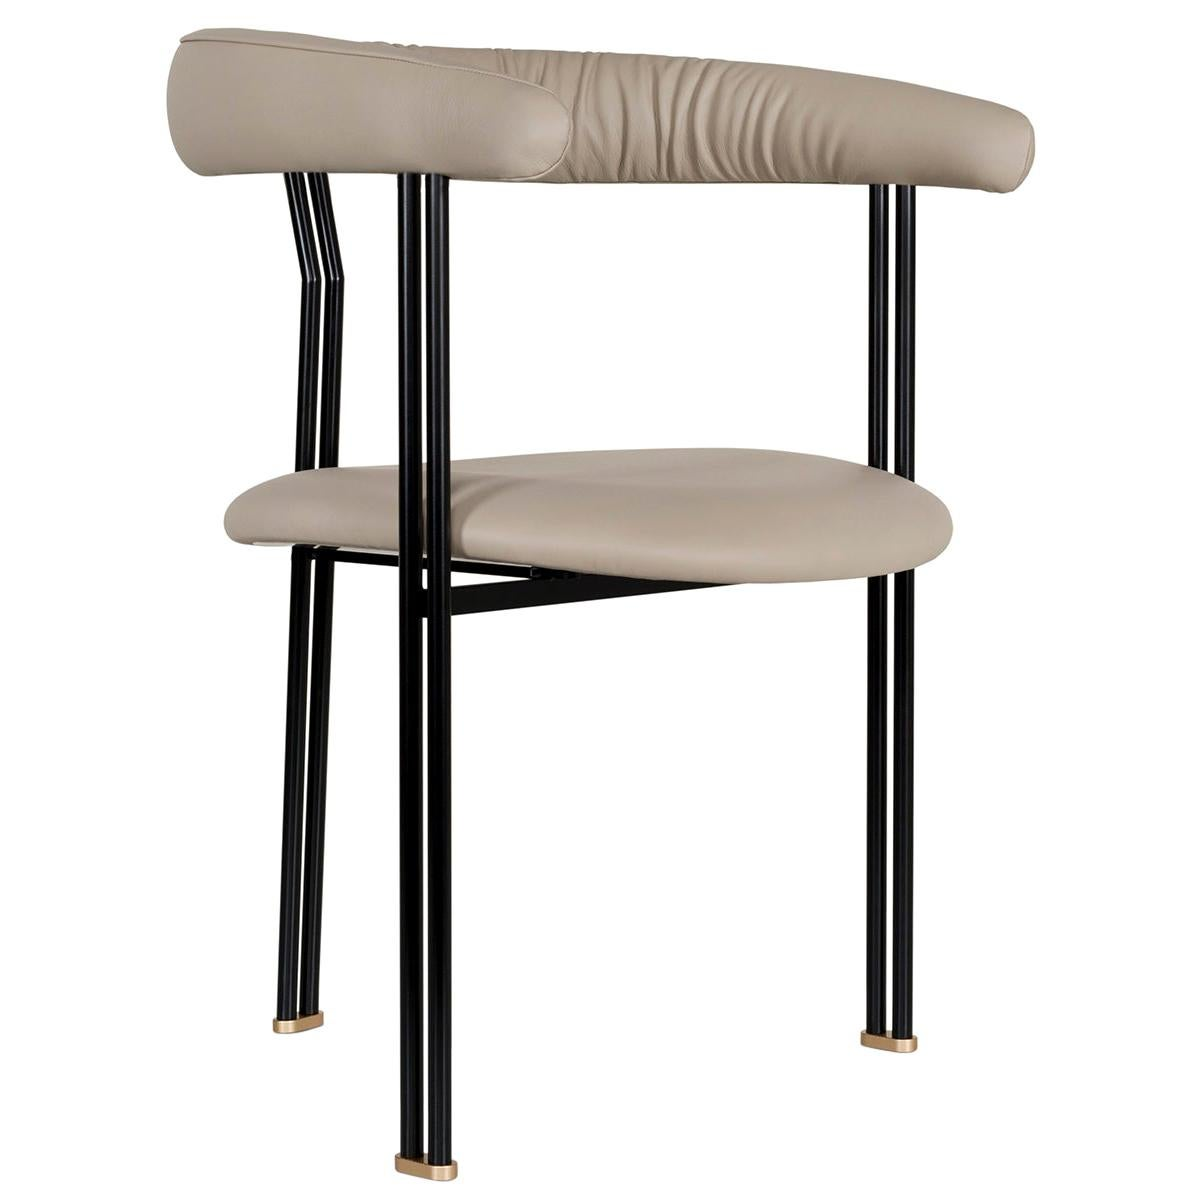 Maia Chair with Armrests Black Lacquered Metal Premium Italian Beige Leather